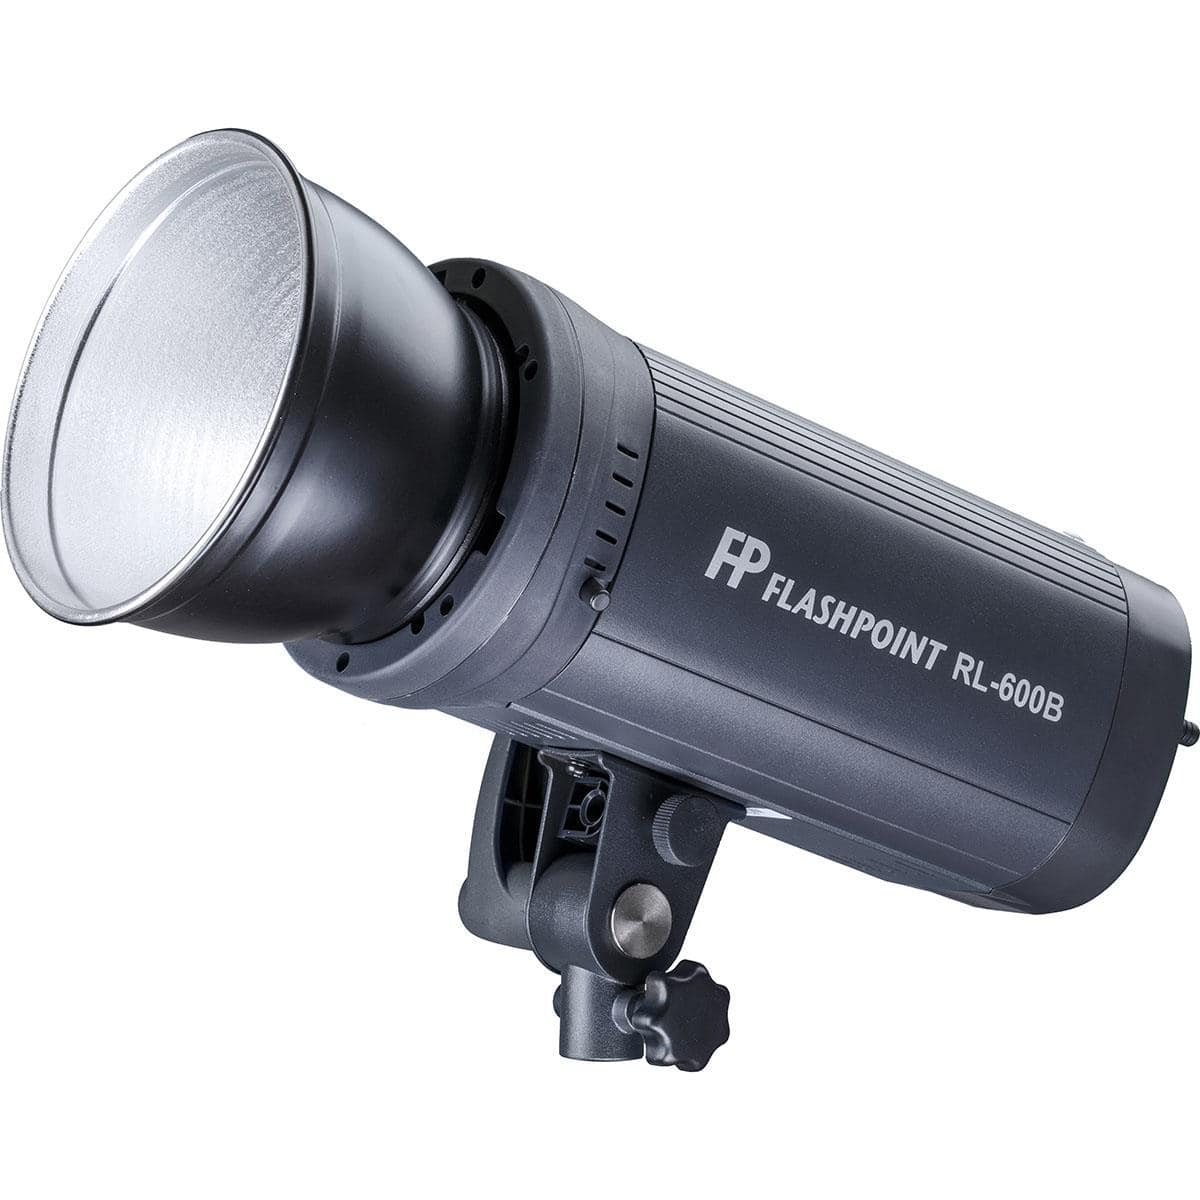 Flashpoint RoveLight 600 Ws Monolight with On Board Power (Bowens Mount) $370 + free shipping